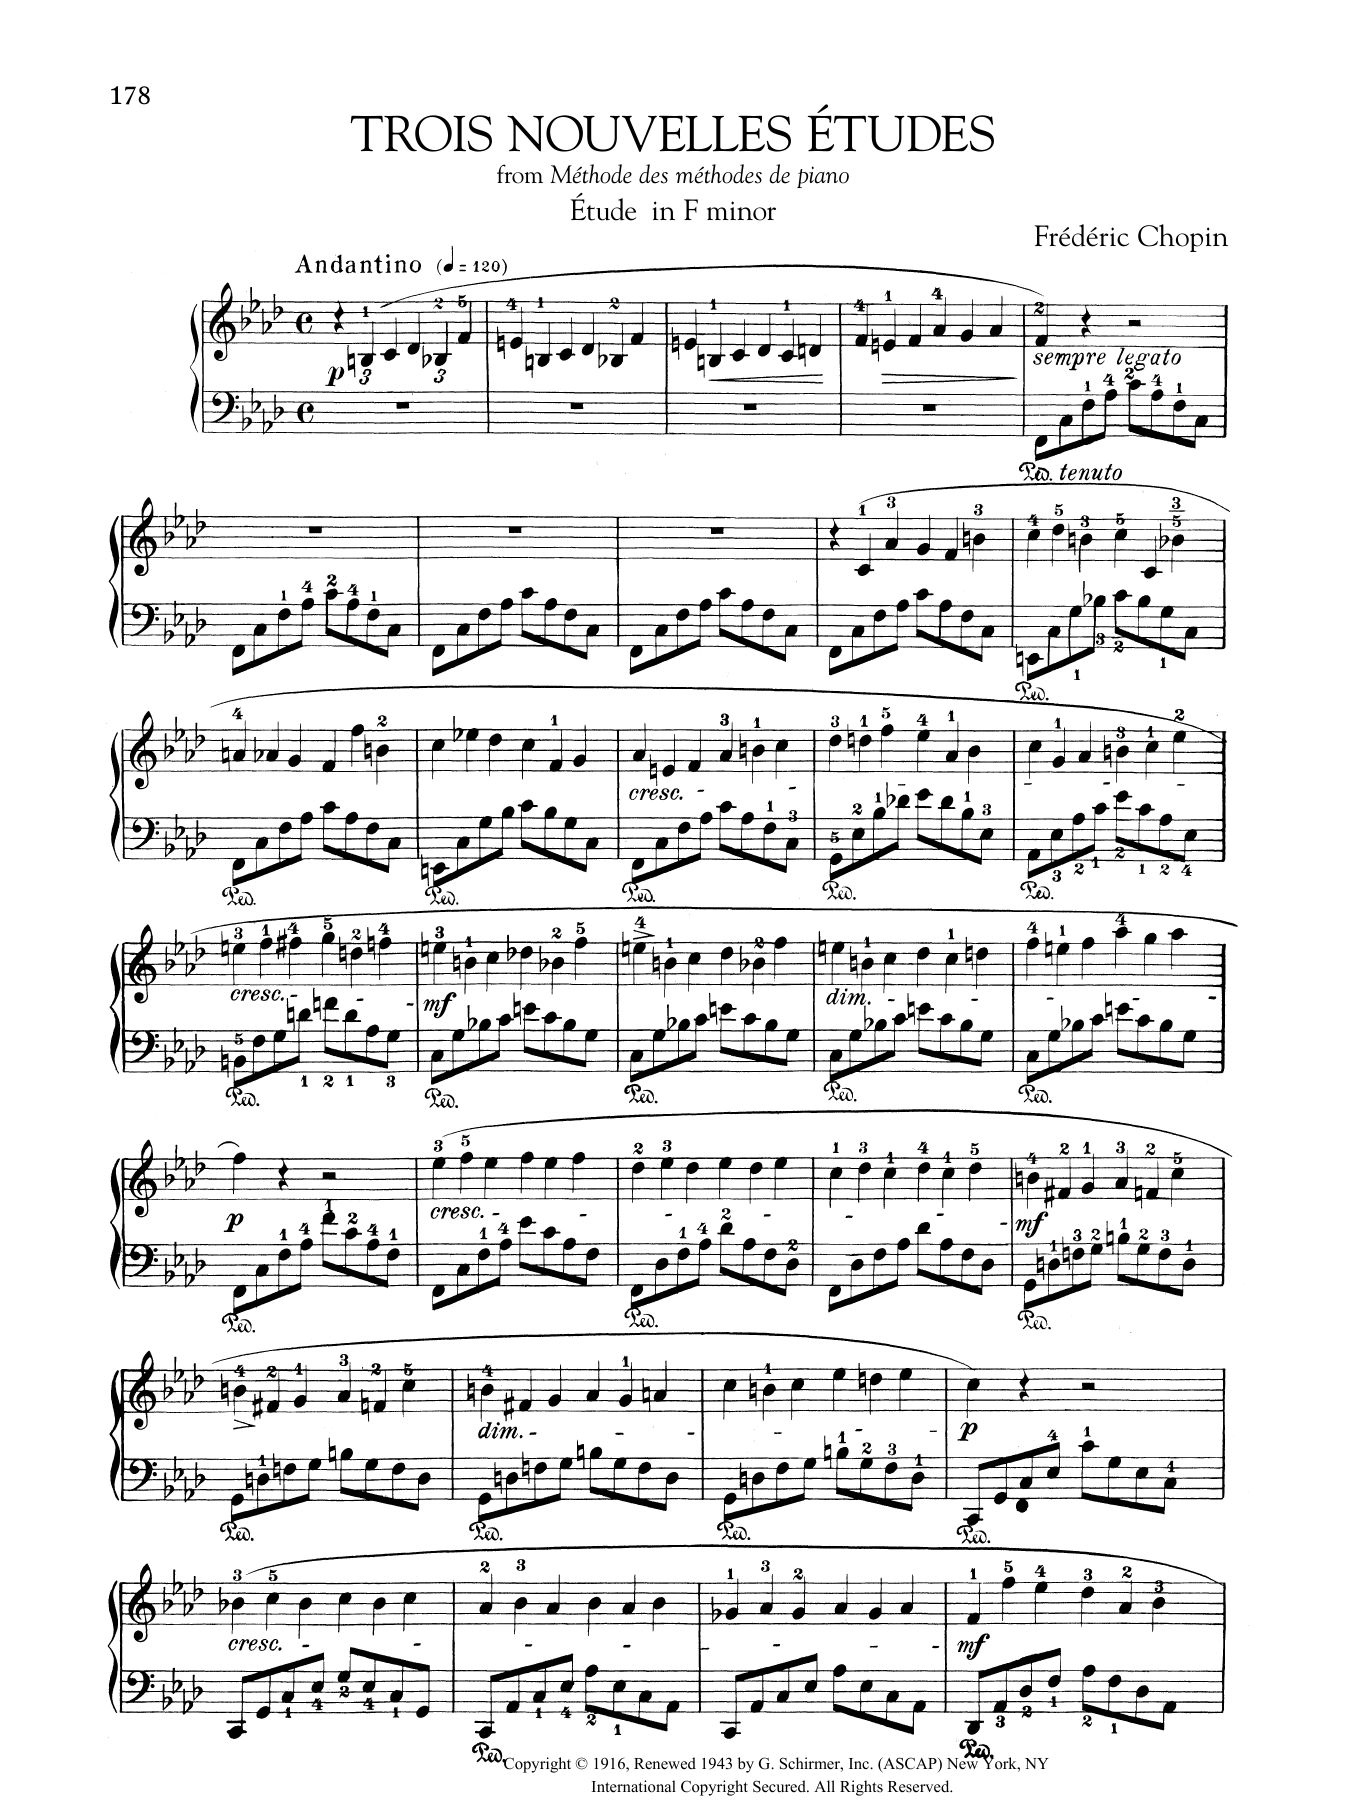 Etude in F minor, from Trois Nouvelles Etudes from Methode des methodes de piano Sheet Music